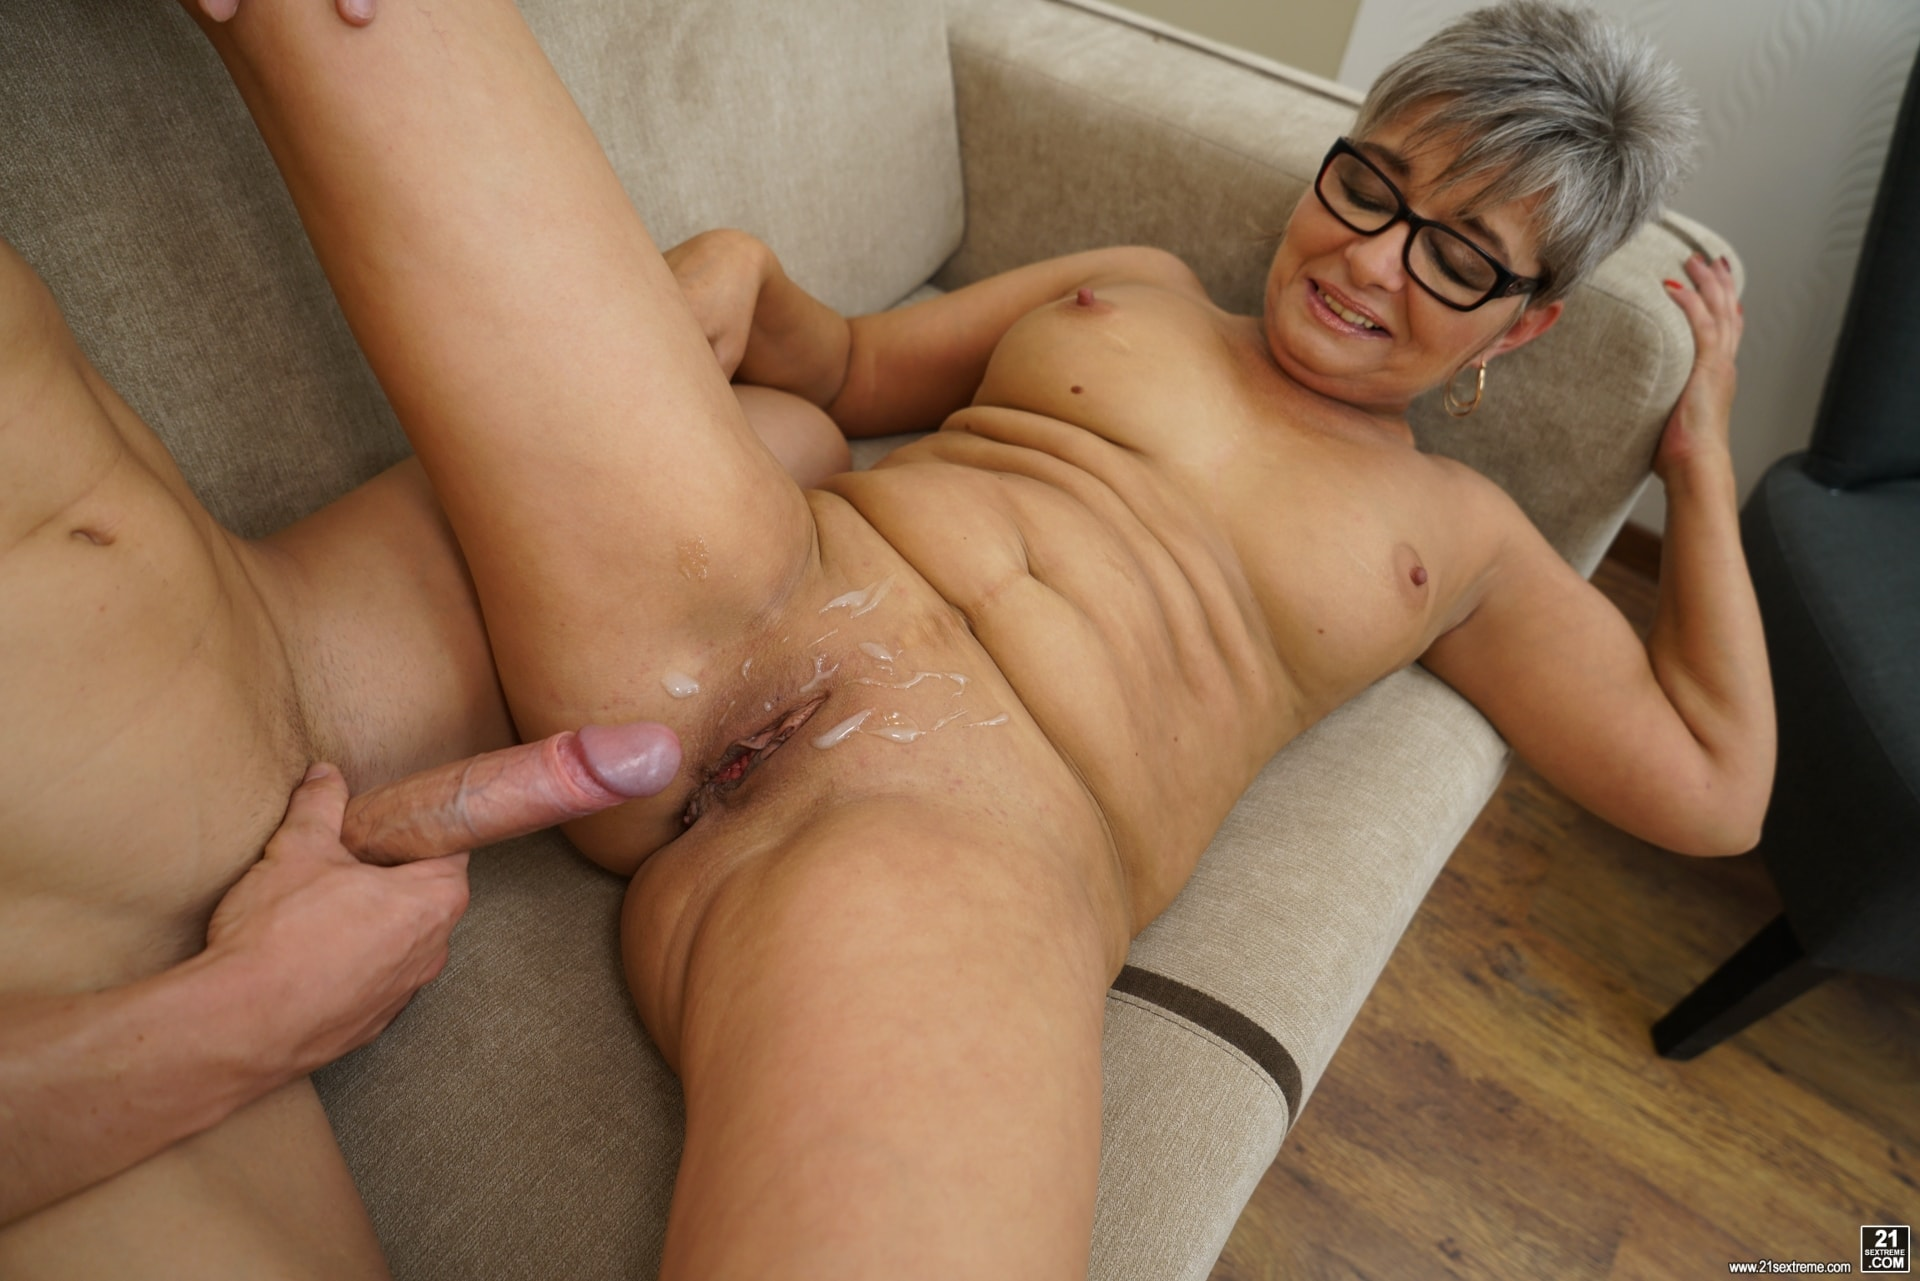 21Sextury 'The Charms Of A Granny's Pussy' starring Jessye (Photo 210)